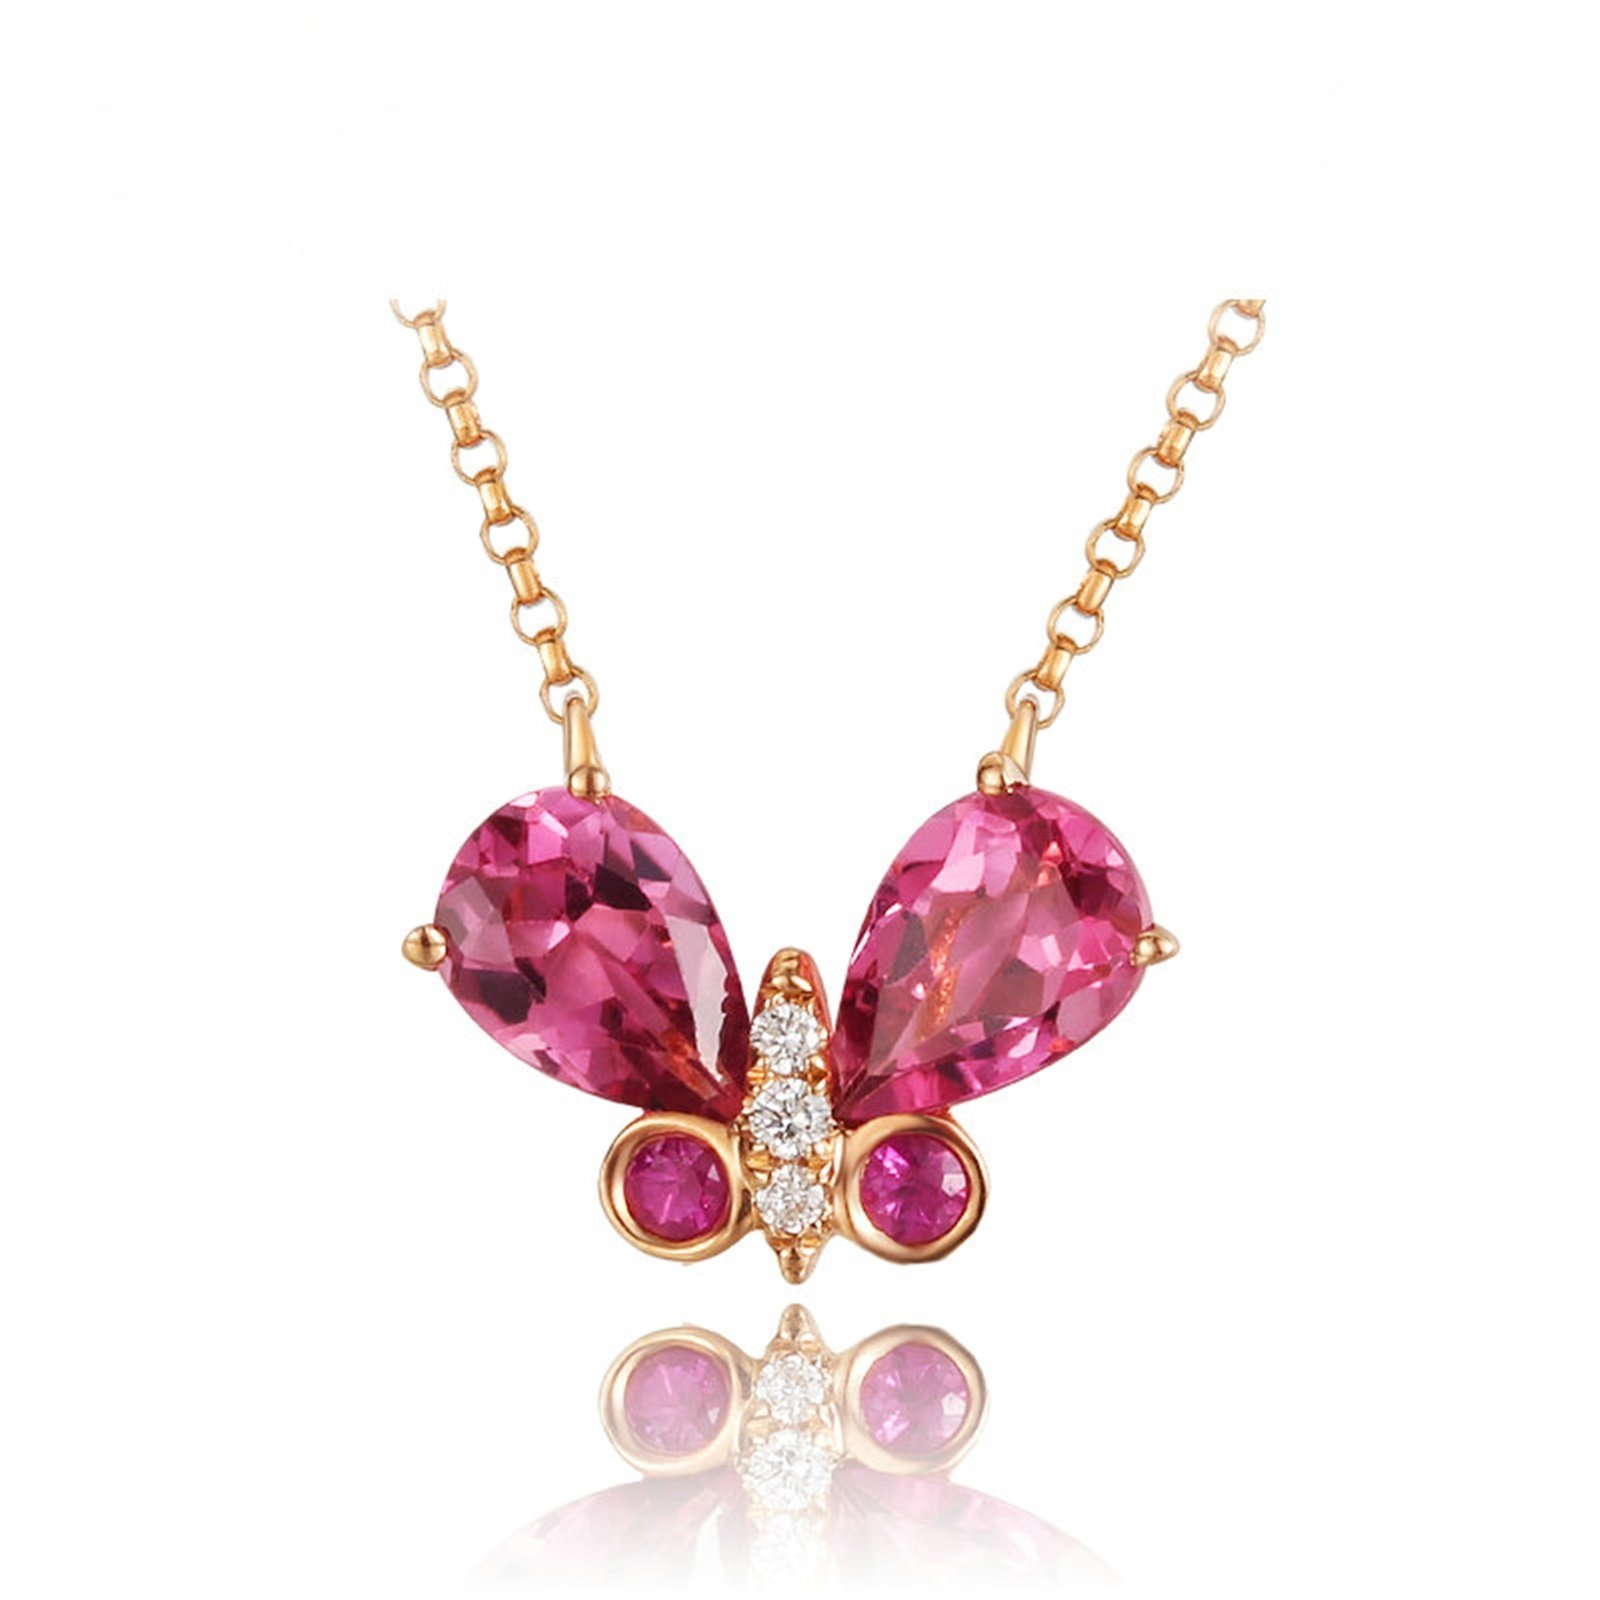 KnSam 18K Gold Necklace For Women Butterfly with Ruby and Diamond Rose Gold 40CM,0.75Ct [Fine Jewelry]